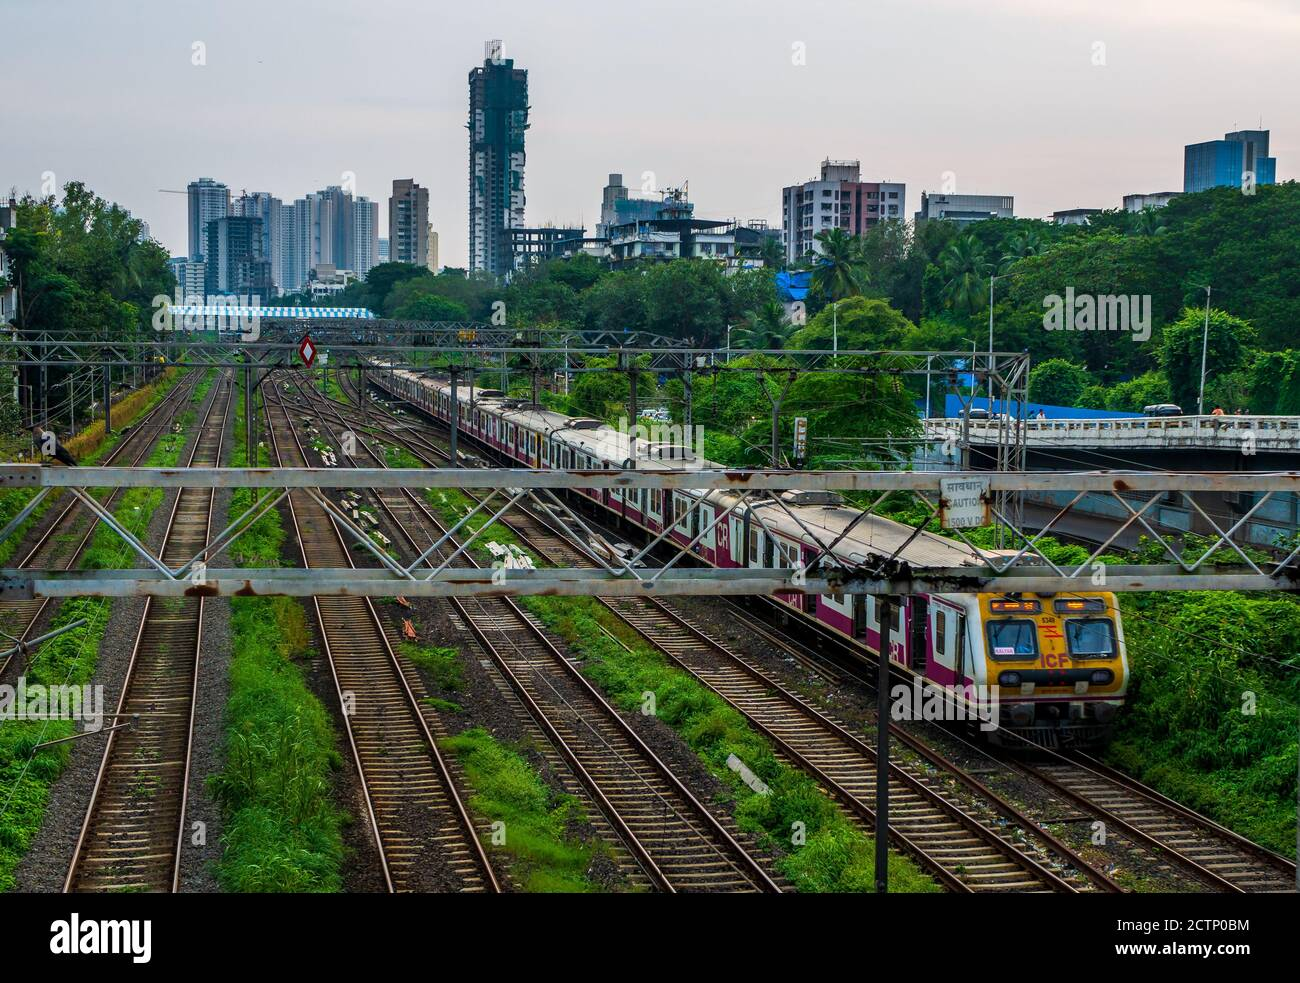 MUMBAI, INDIA - September 20, 2020 : Mumbai Suburban Railway, one of the busiest commuter rail systems in the world having most severe overcrowding in Stock Photo